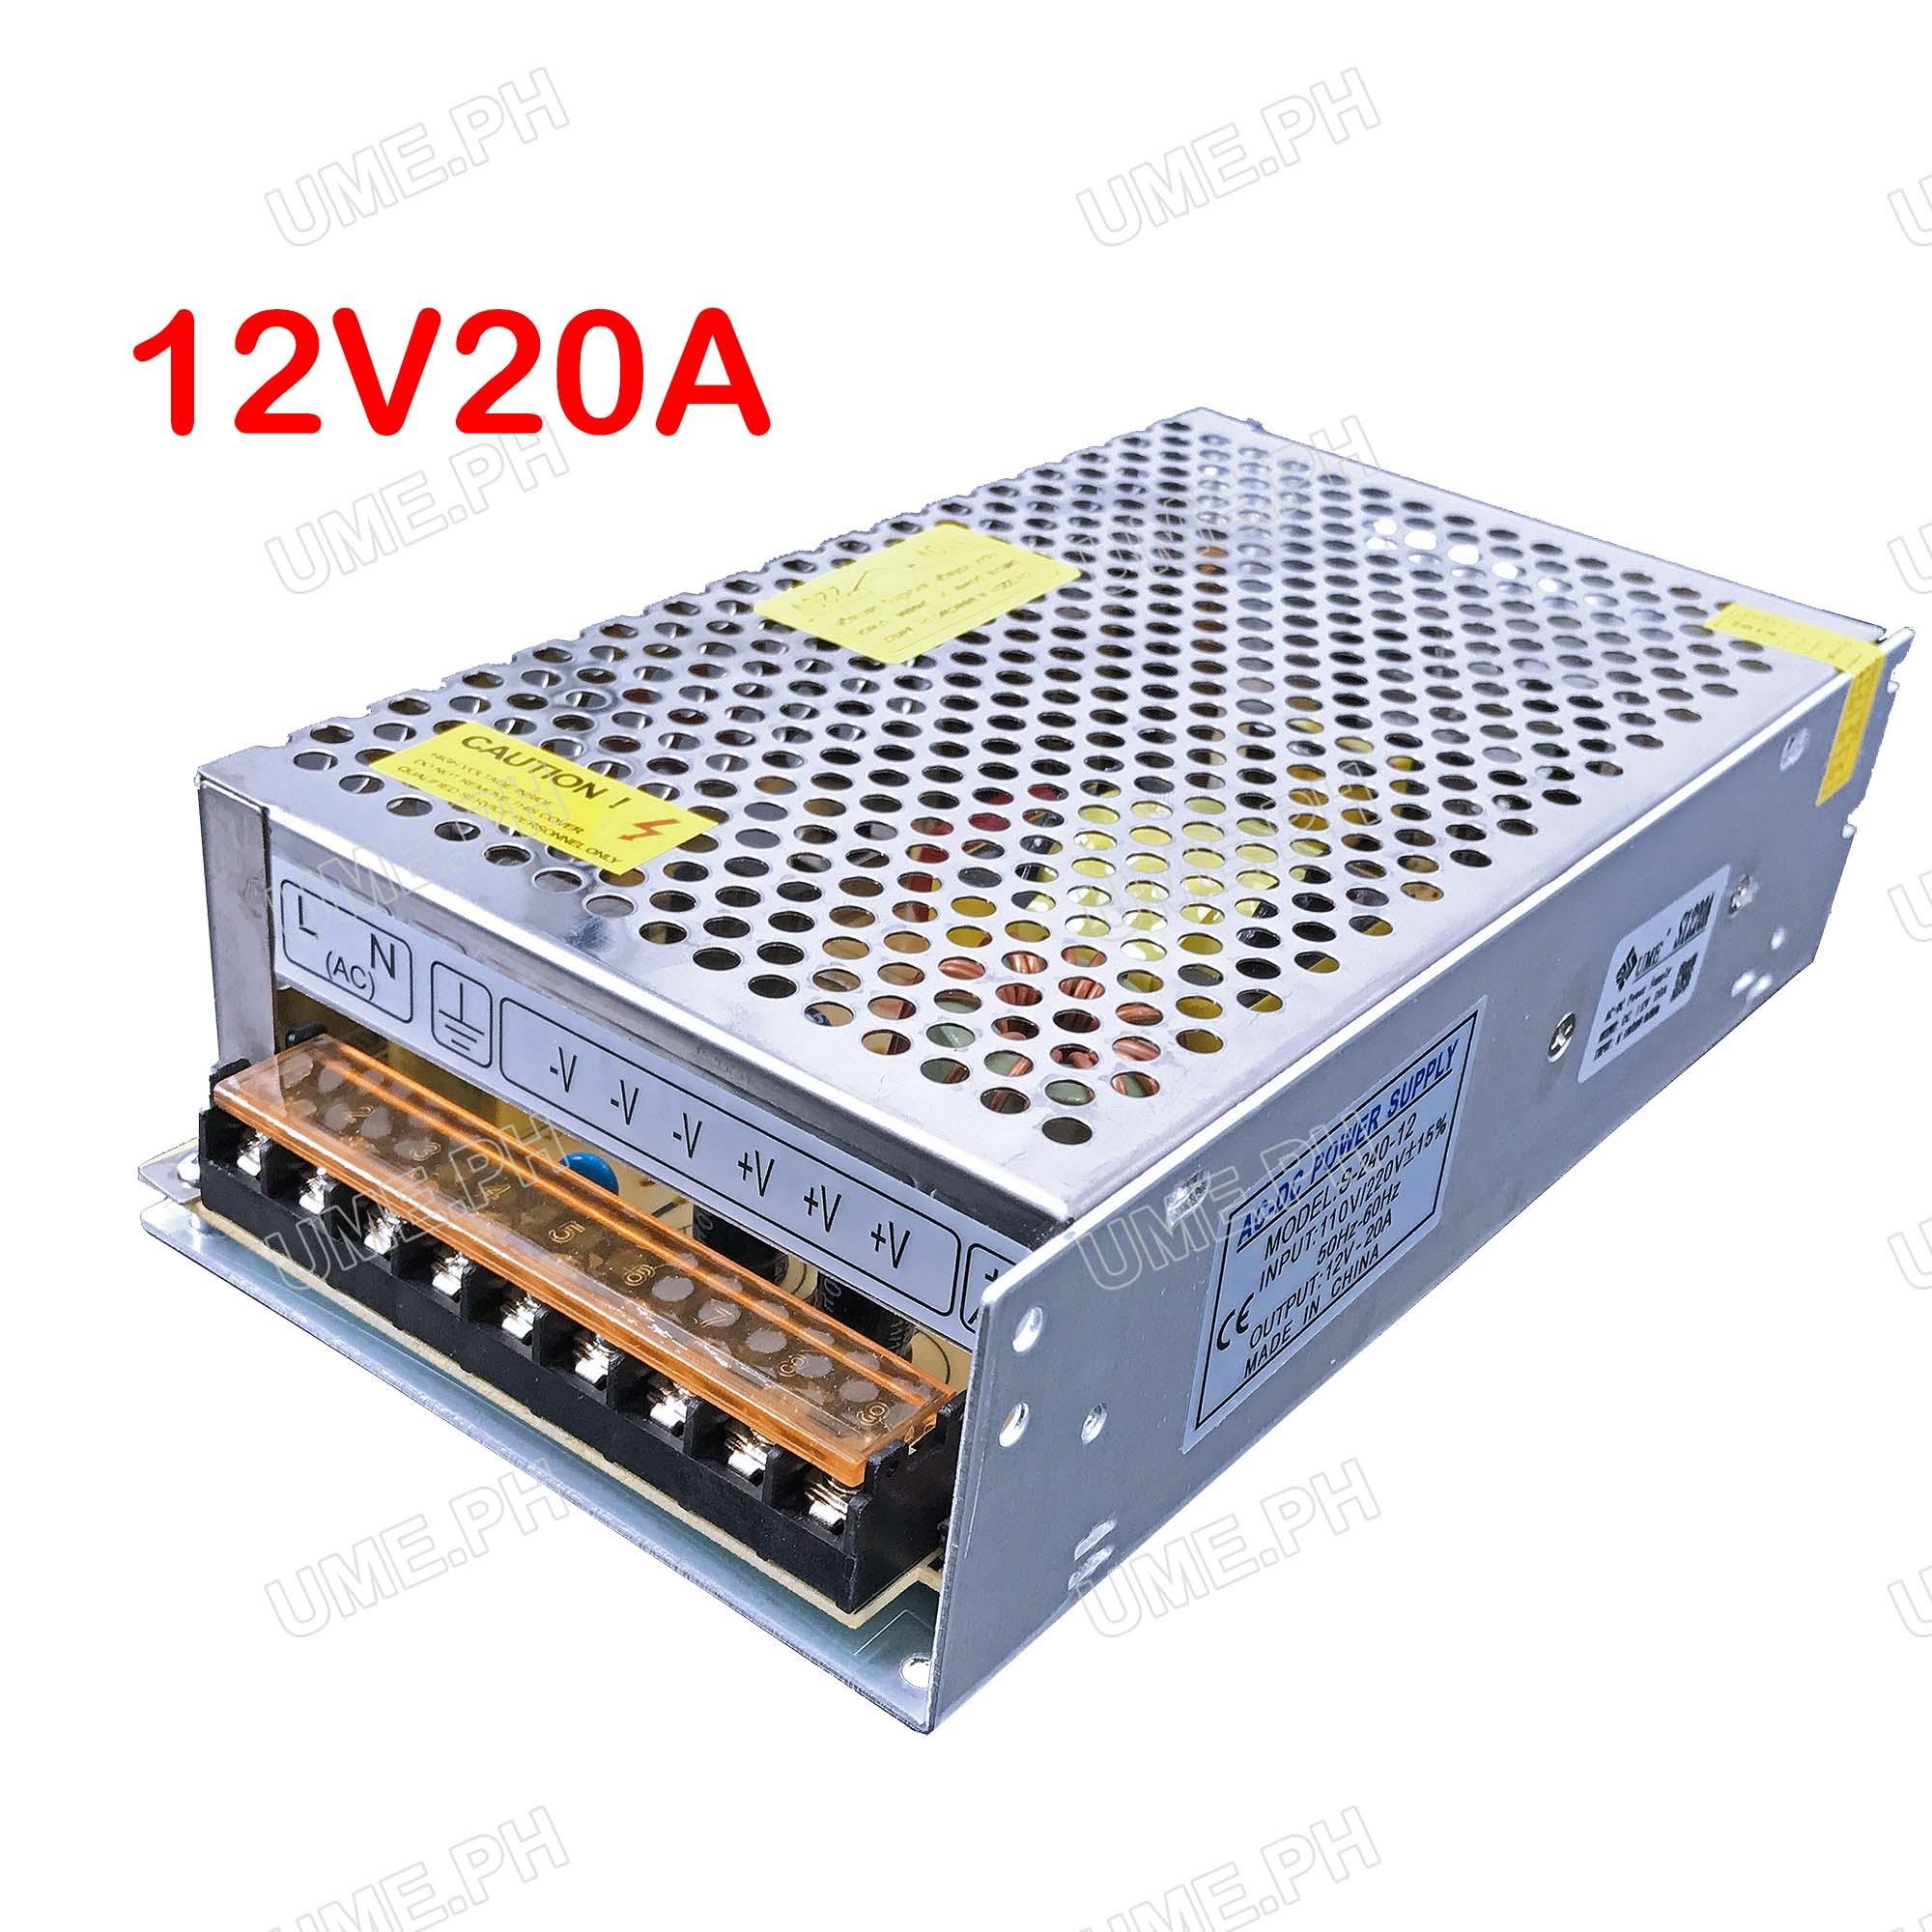 Pc Power Supply For Sale Computer Prices Brands Powerfull 12 V 10 Ampere Ume Cctv Centralize Adapter Dc 12v 20a S1220a